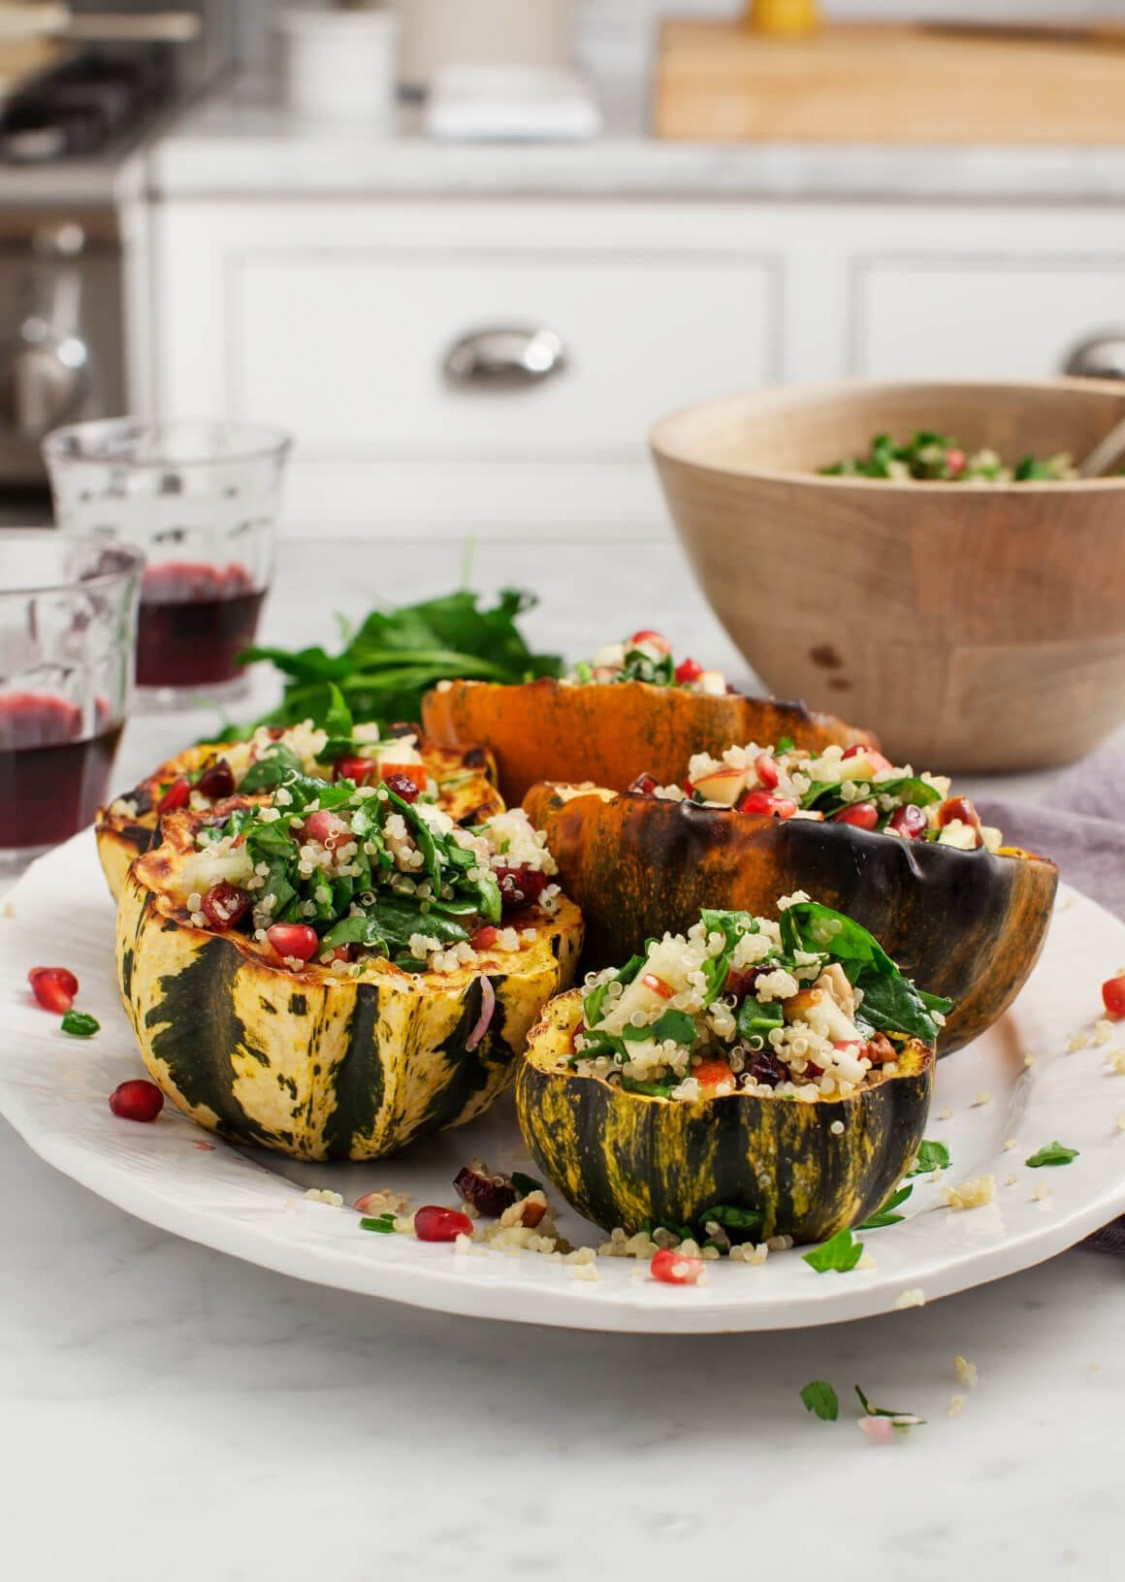 Quinoa Salad Stuffed Acorn Squash - Recipe Vegetarian Quinoa Stuffing